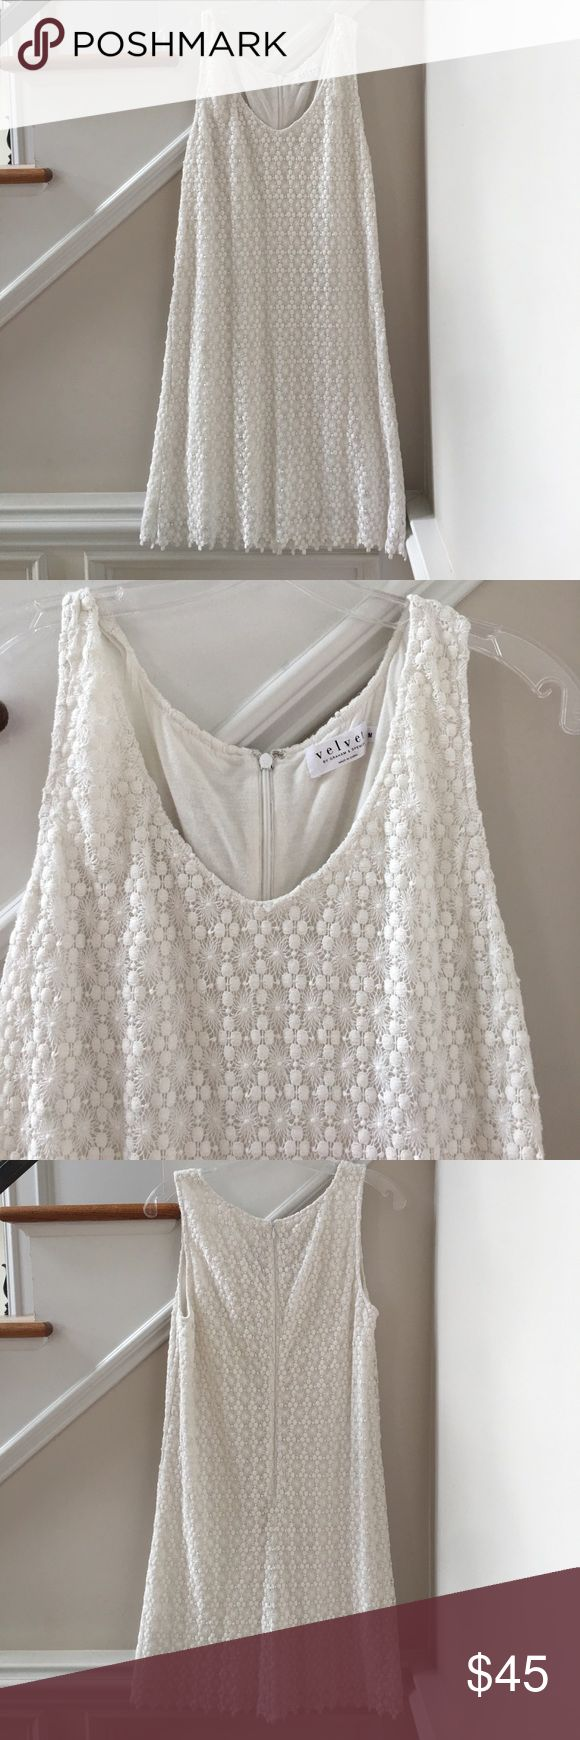 White Lace Dress. Velvet by Graham & Spencer Beautiful white lace dress from Velvet by Graham & Spencer. Zipper back w/hook. Size Medium. Can be worn casual or dress up.  Hits above the knee. Excellent Condition. Velvet by Graham & Spencer Dresses